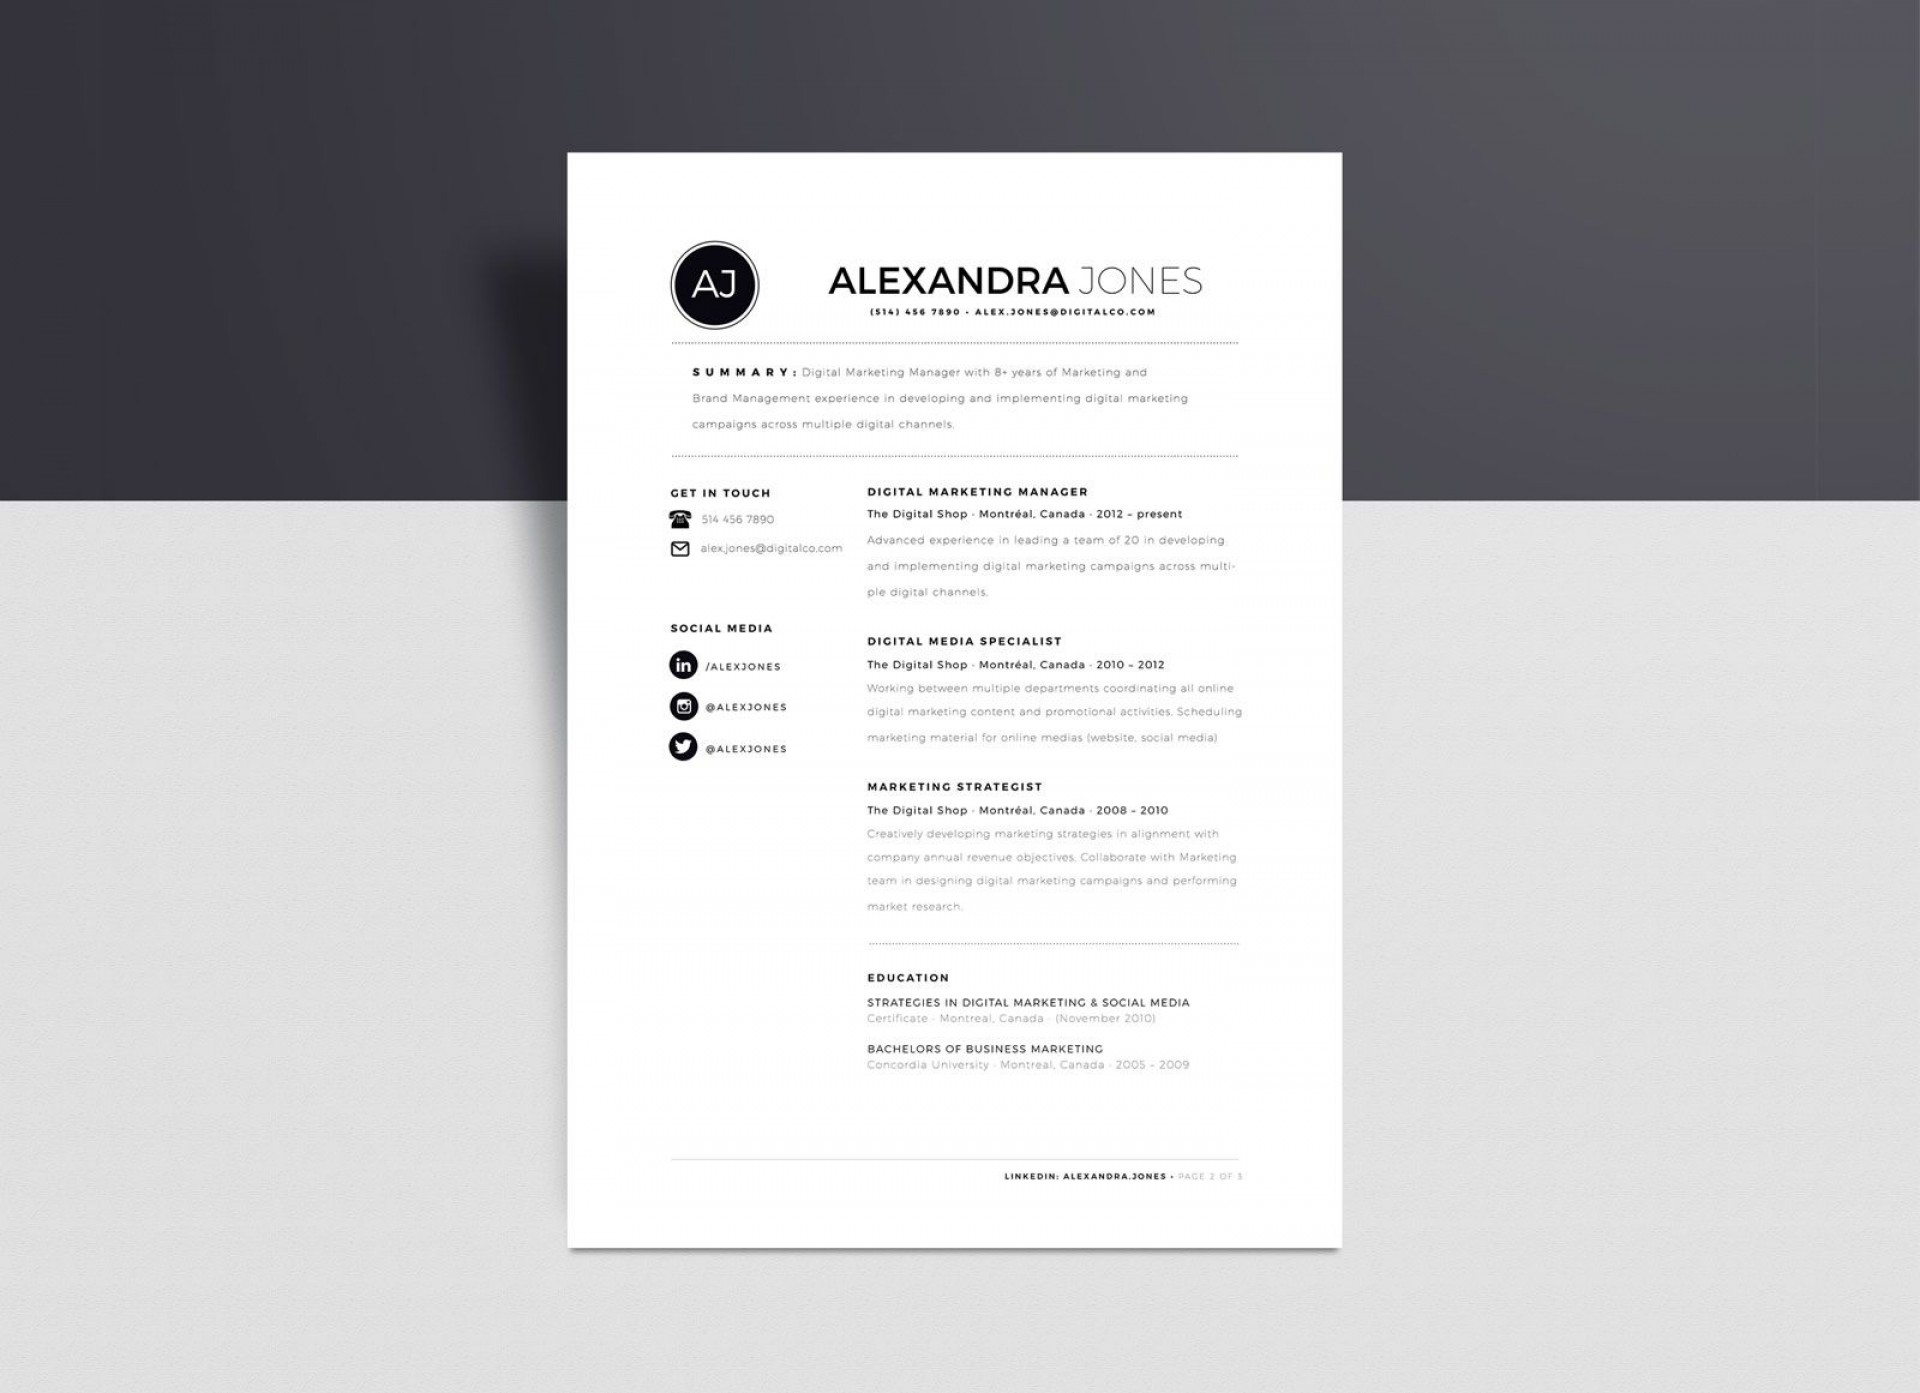 003 Stunning Resume Template Free Word Highest Clarity  Download Cv 2020 Format1920